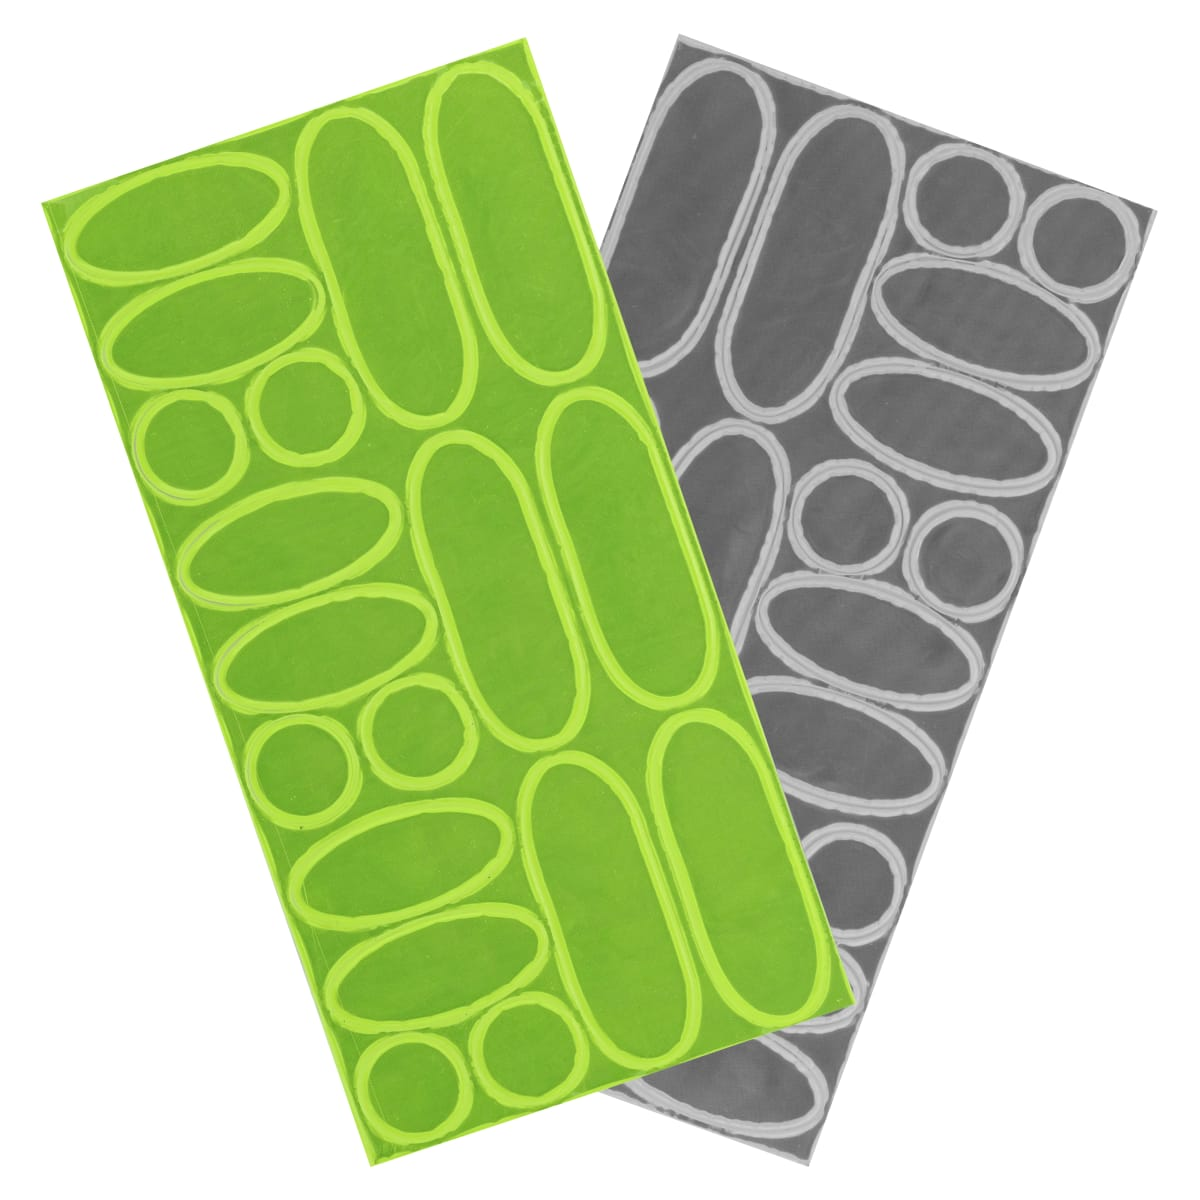 Pack of 36 reflective stickers